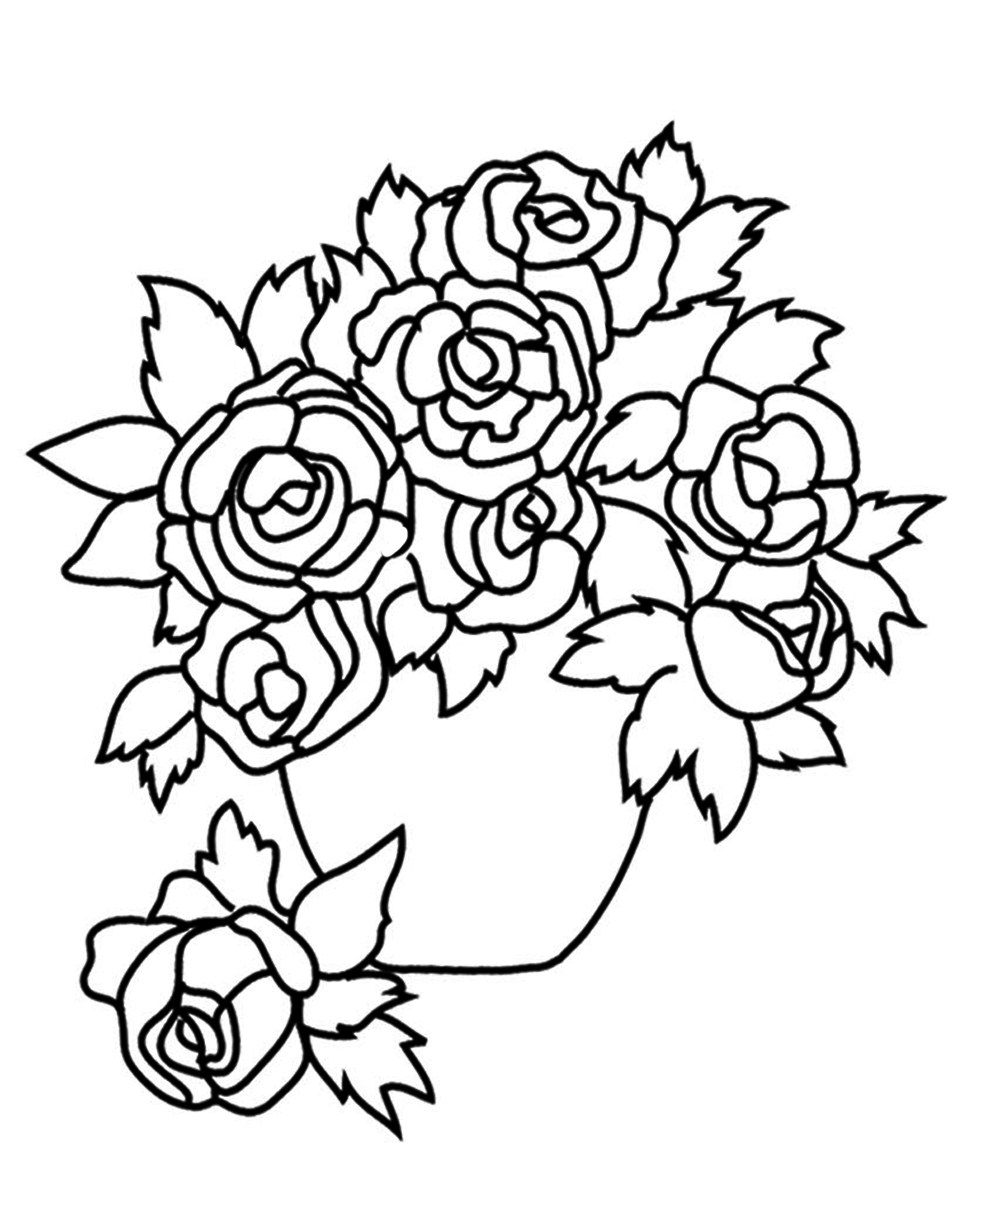 Rose Leaves Drawing At Free For Personal Use Flower Line Diagram Simple Of Bud Stock Vector 264x298 Eglantine Clip Art 1004x1222 Coloring Pages